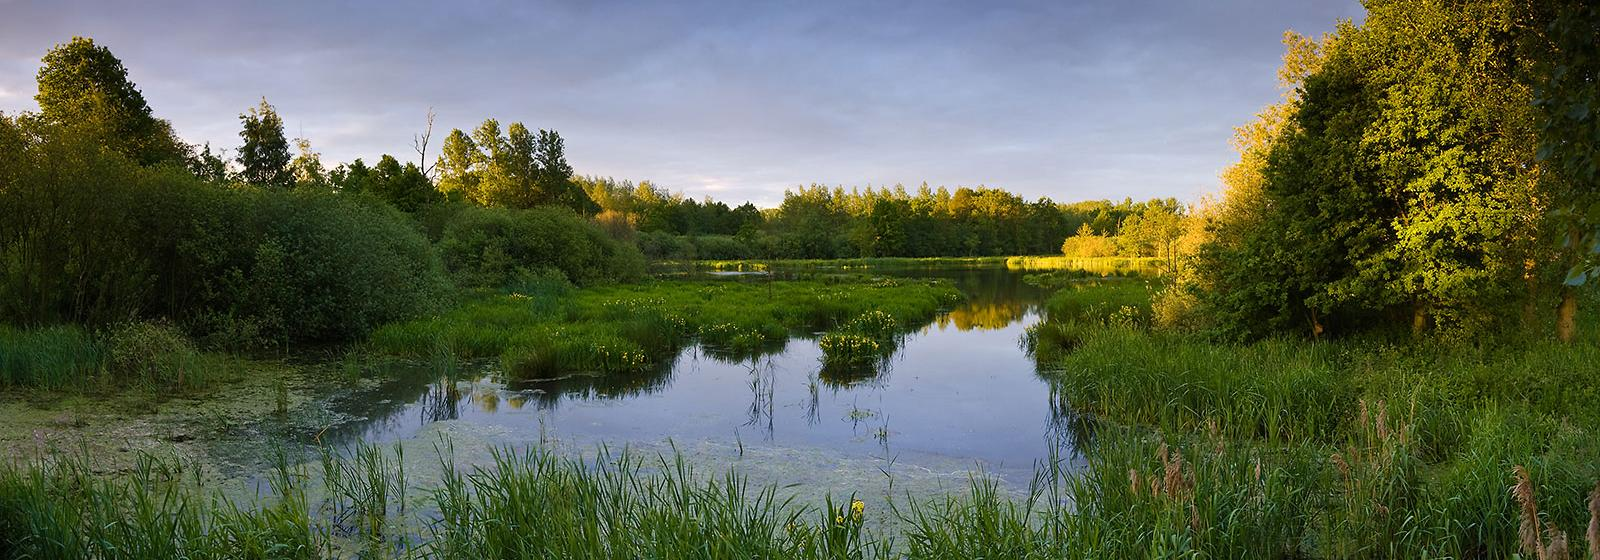 Kempen~Broek, situated on the northeastern edge of the Kempens Plateau in the Netherlands, is one of three pioneer rewilding projects analysed in the article.